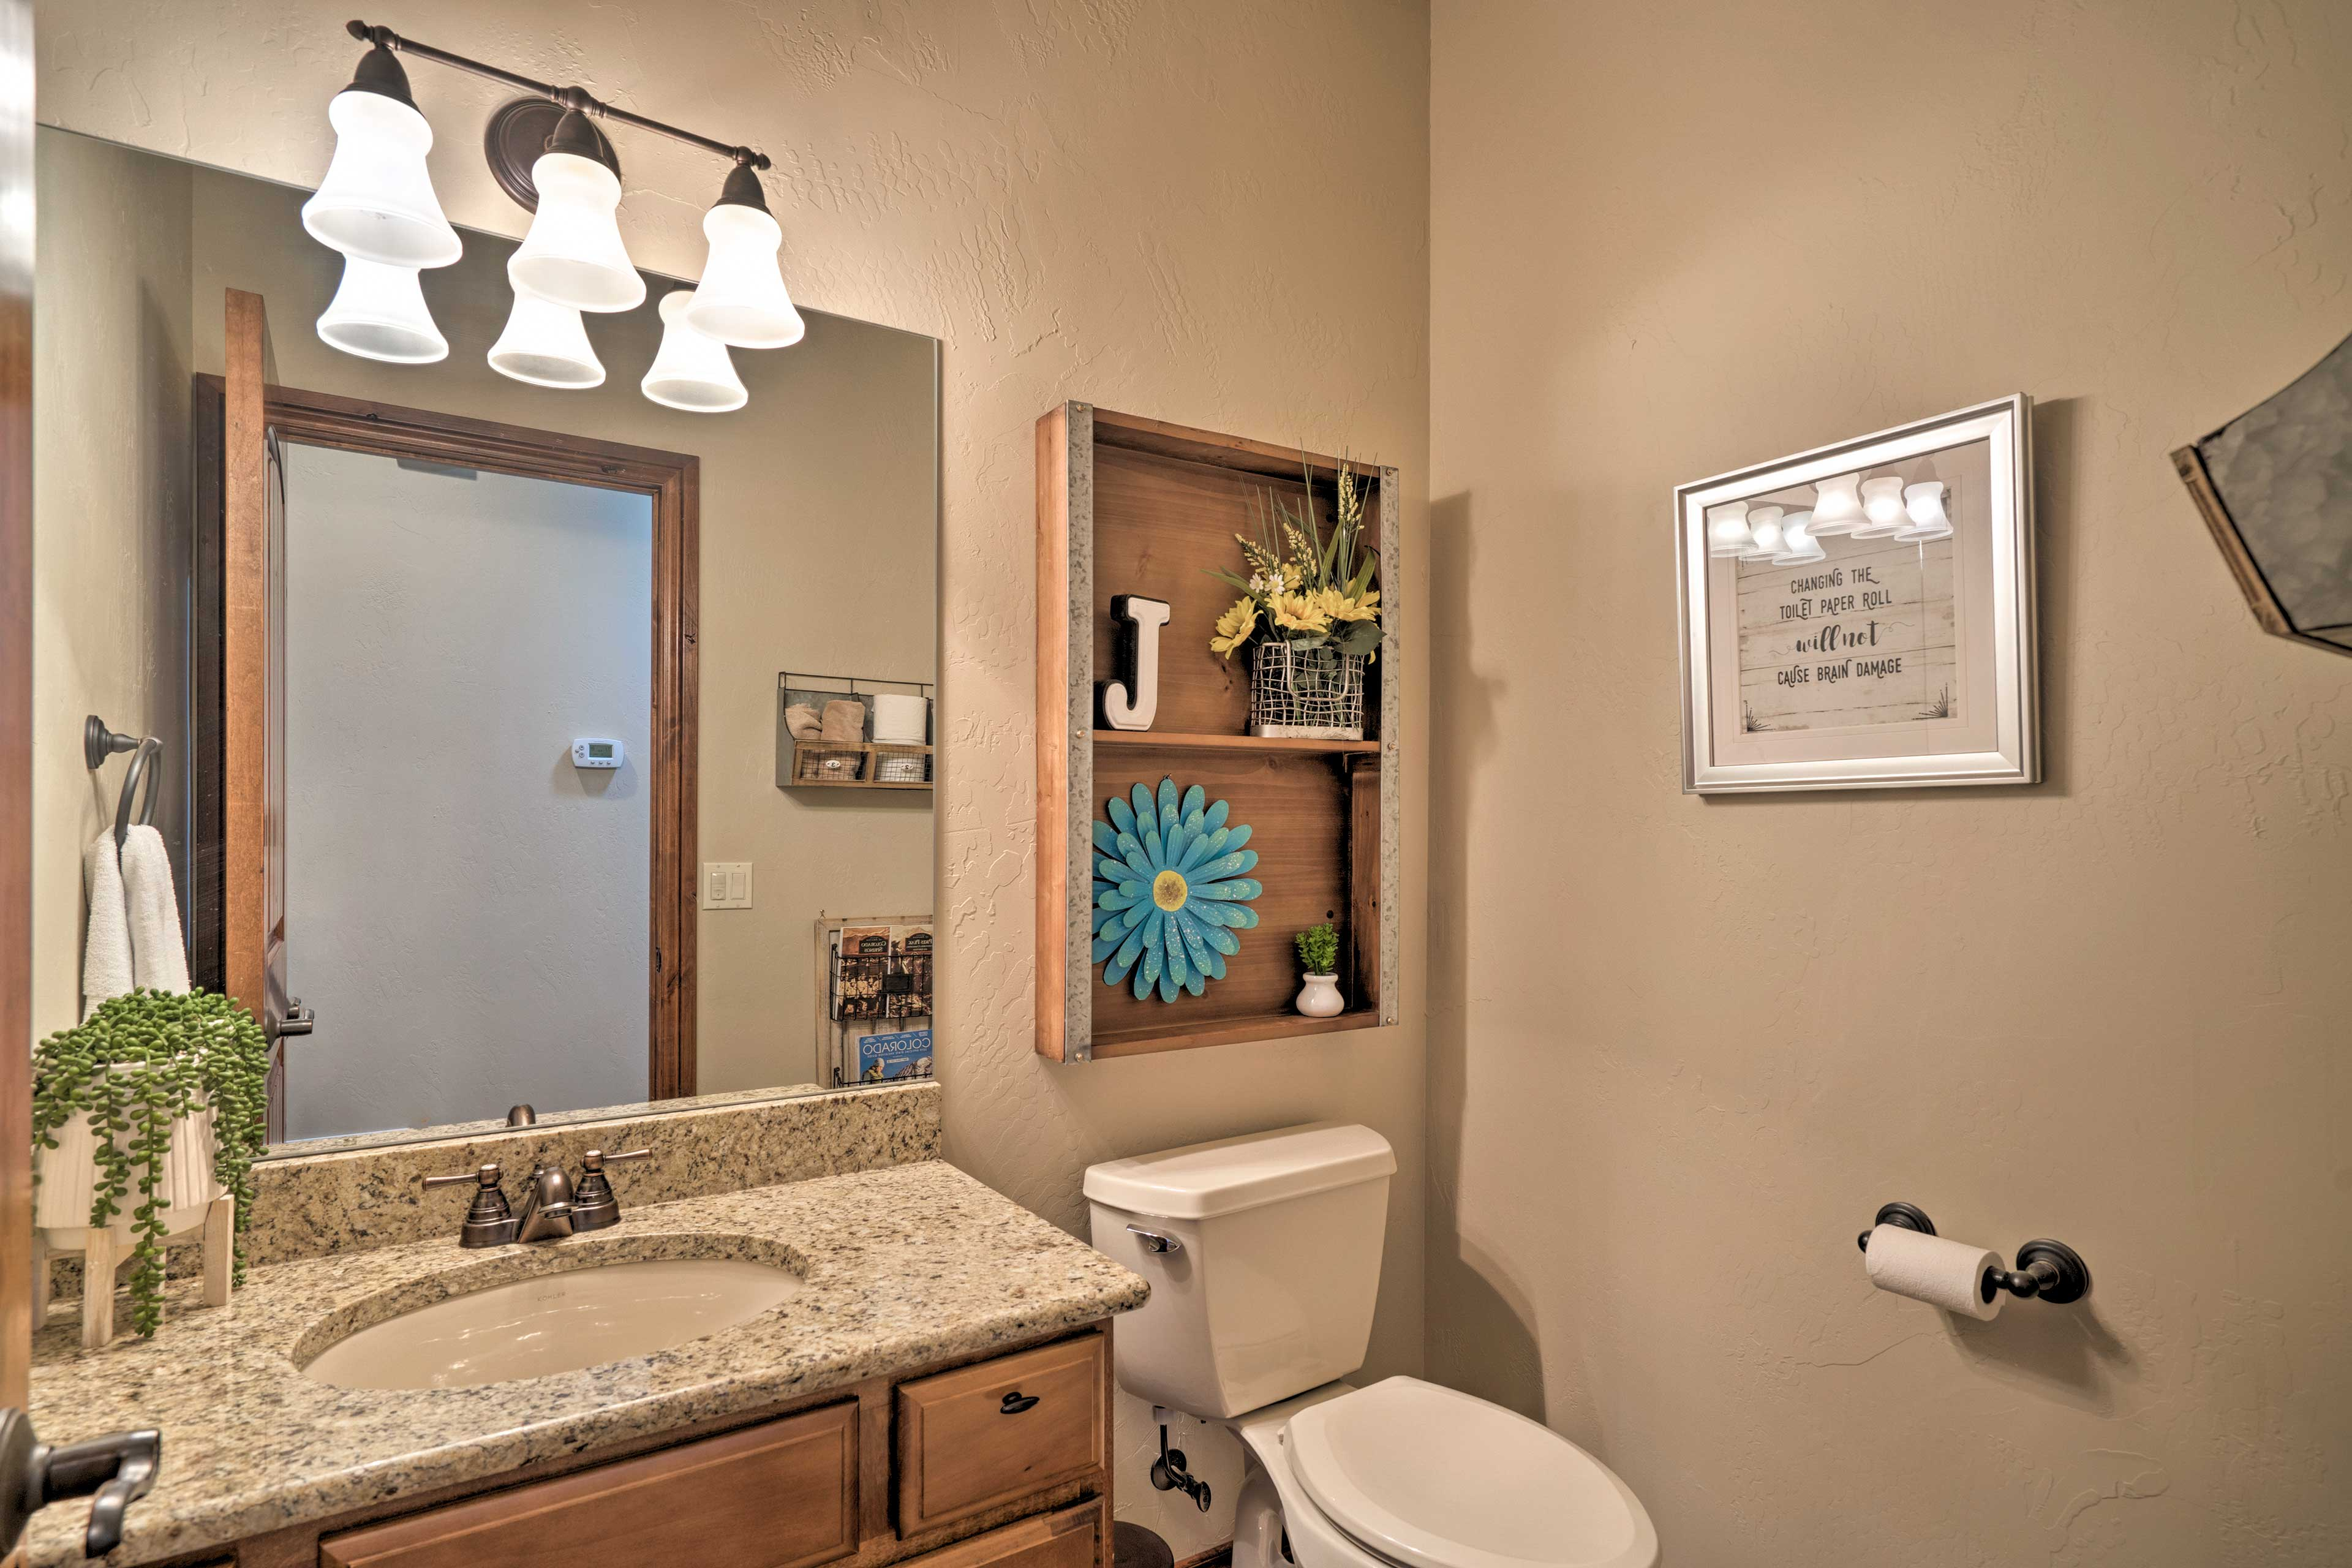 The home features 3 full baths and 1 half bathroom.